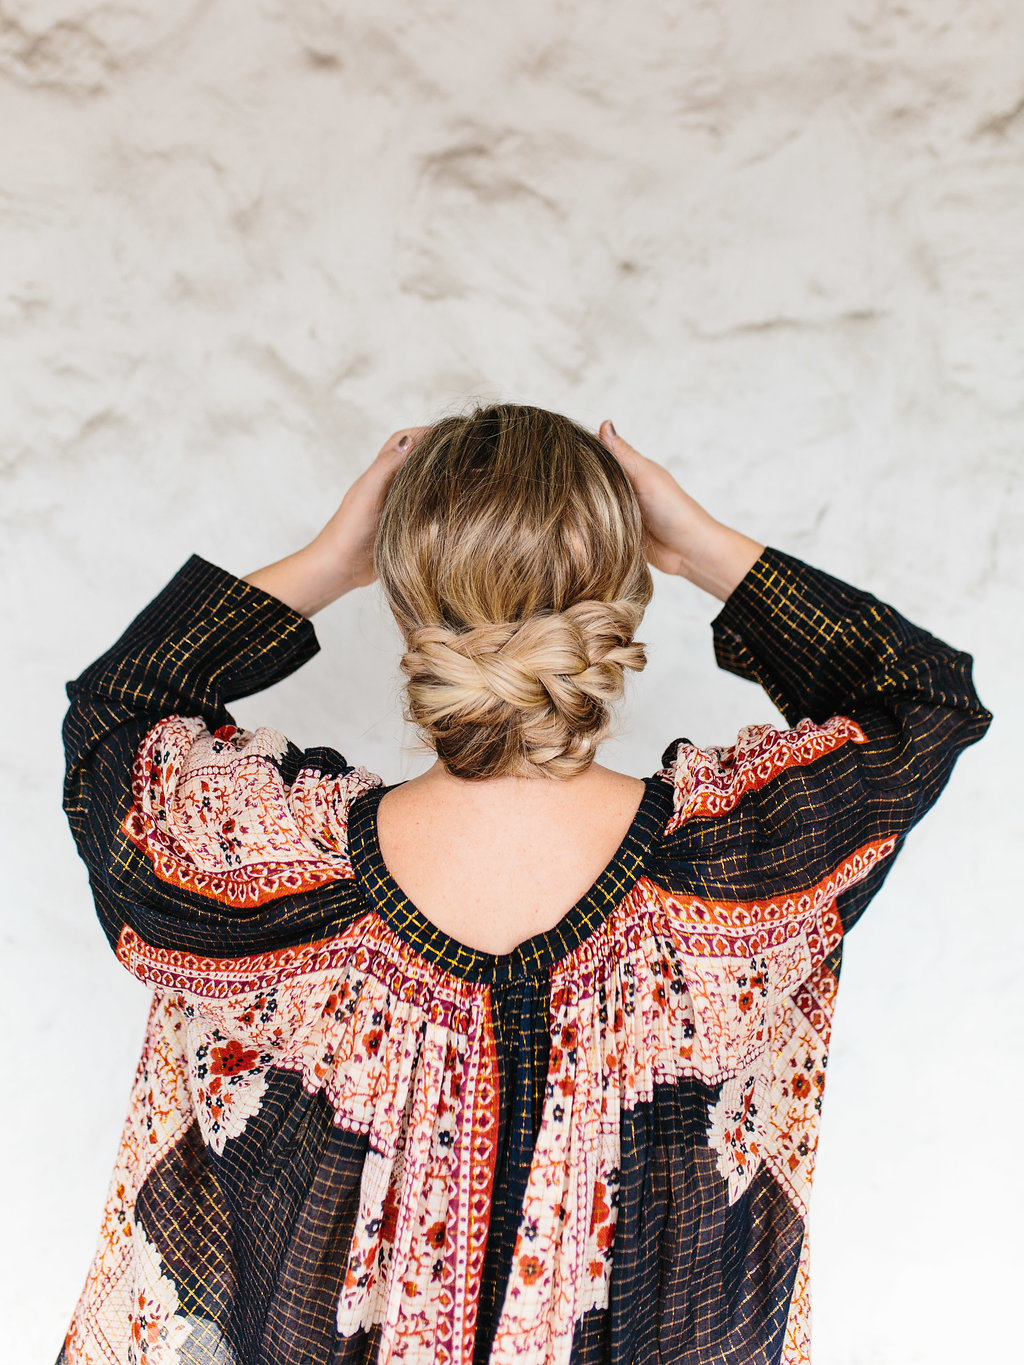 The back of a braided updo